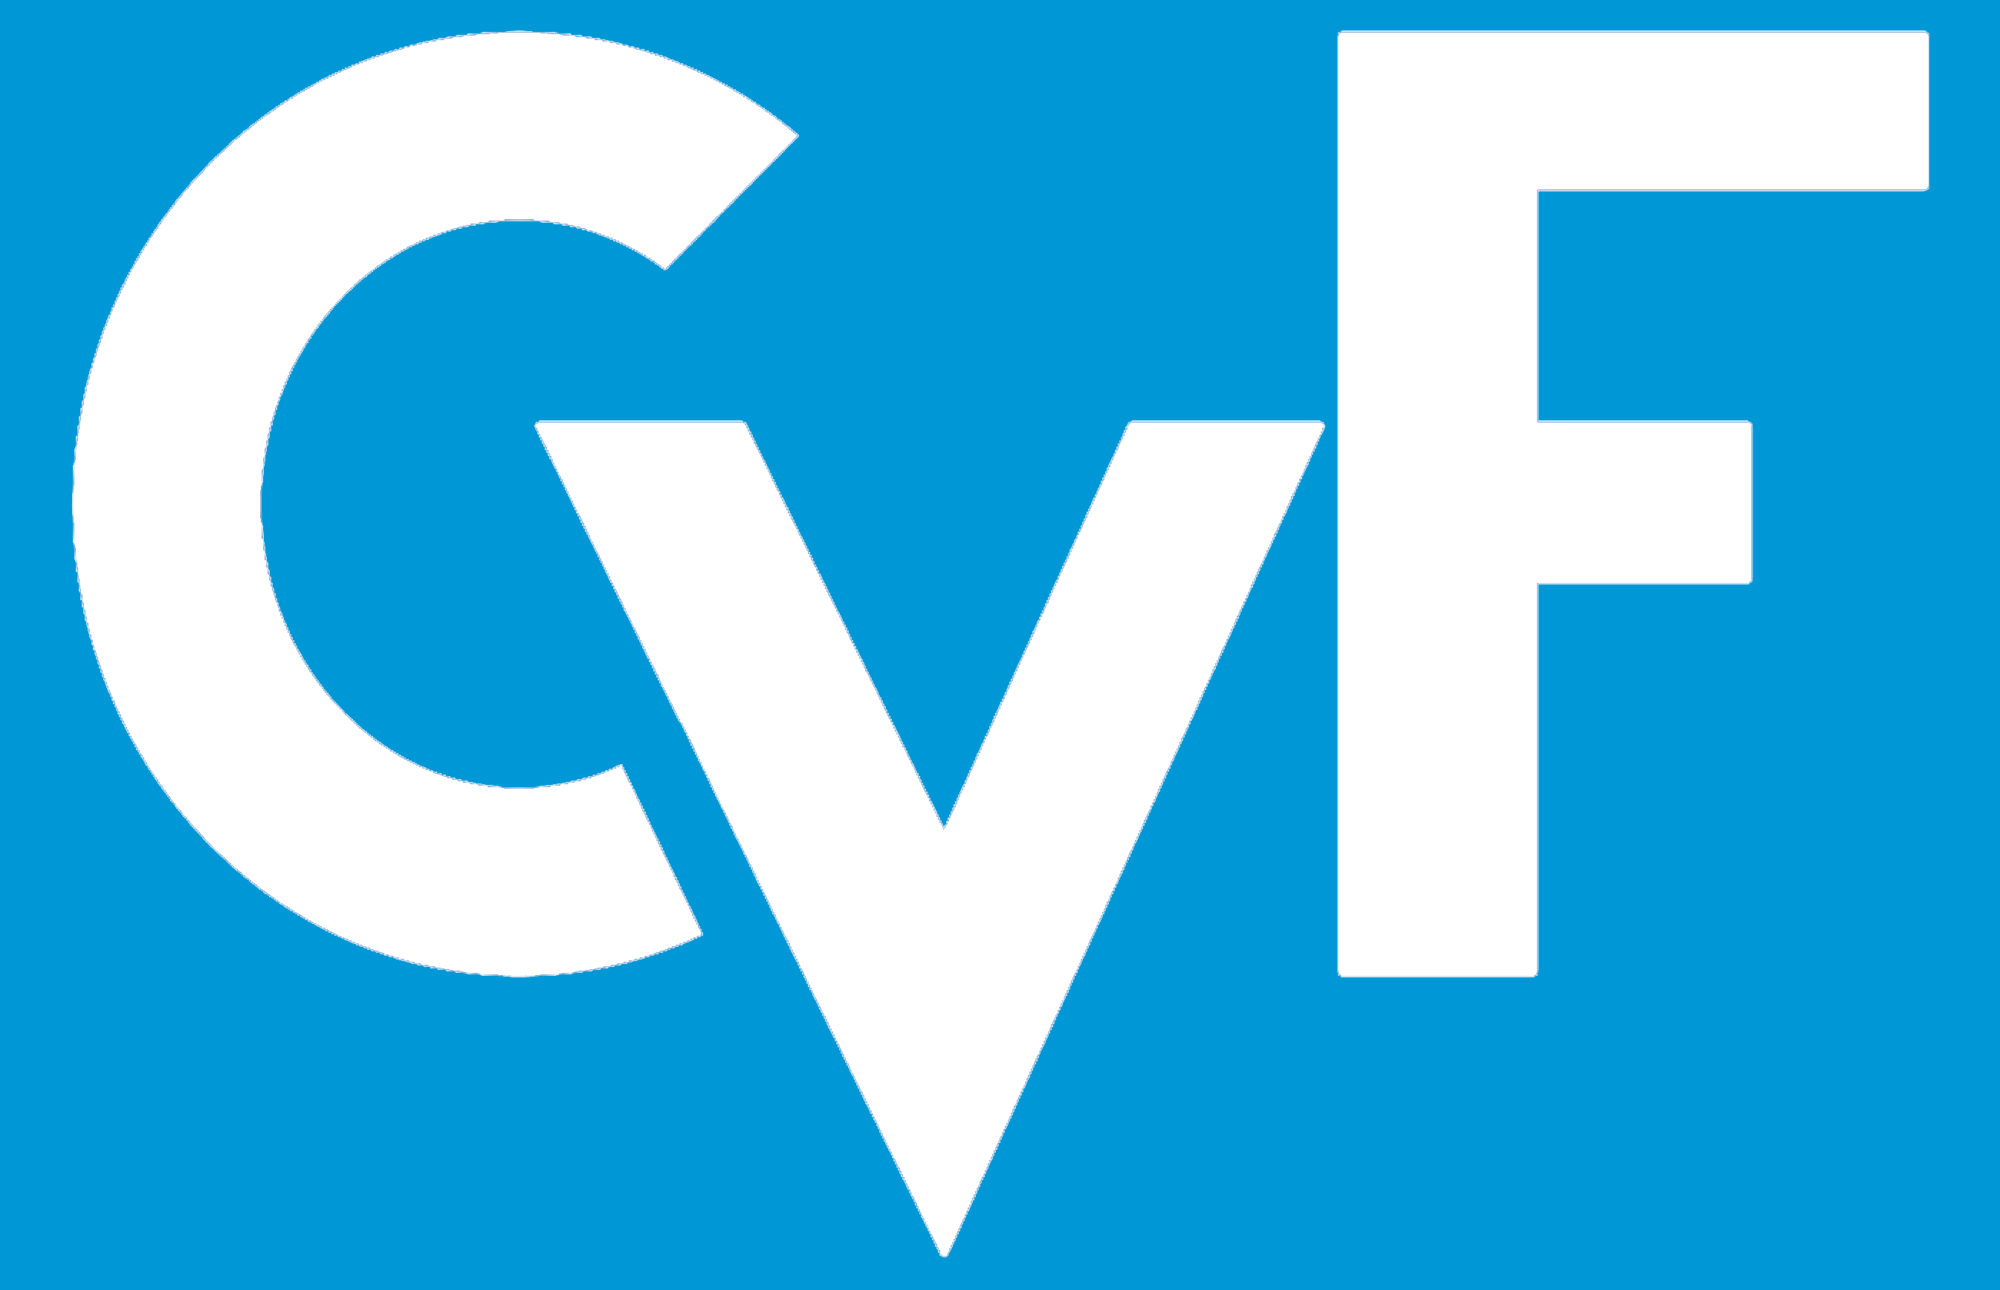 The Computer Vision Foundation